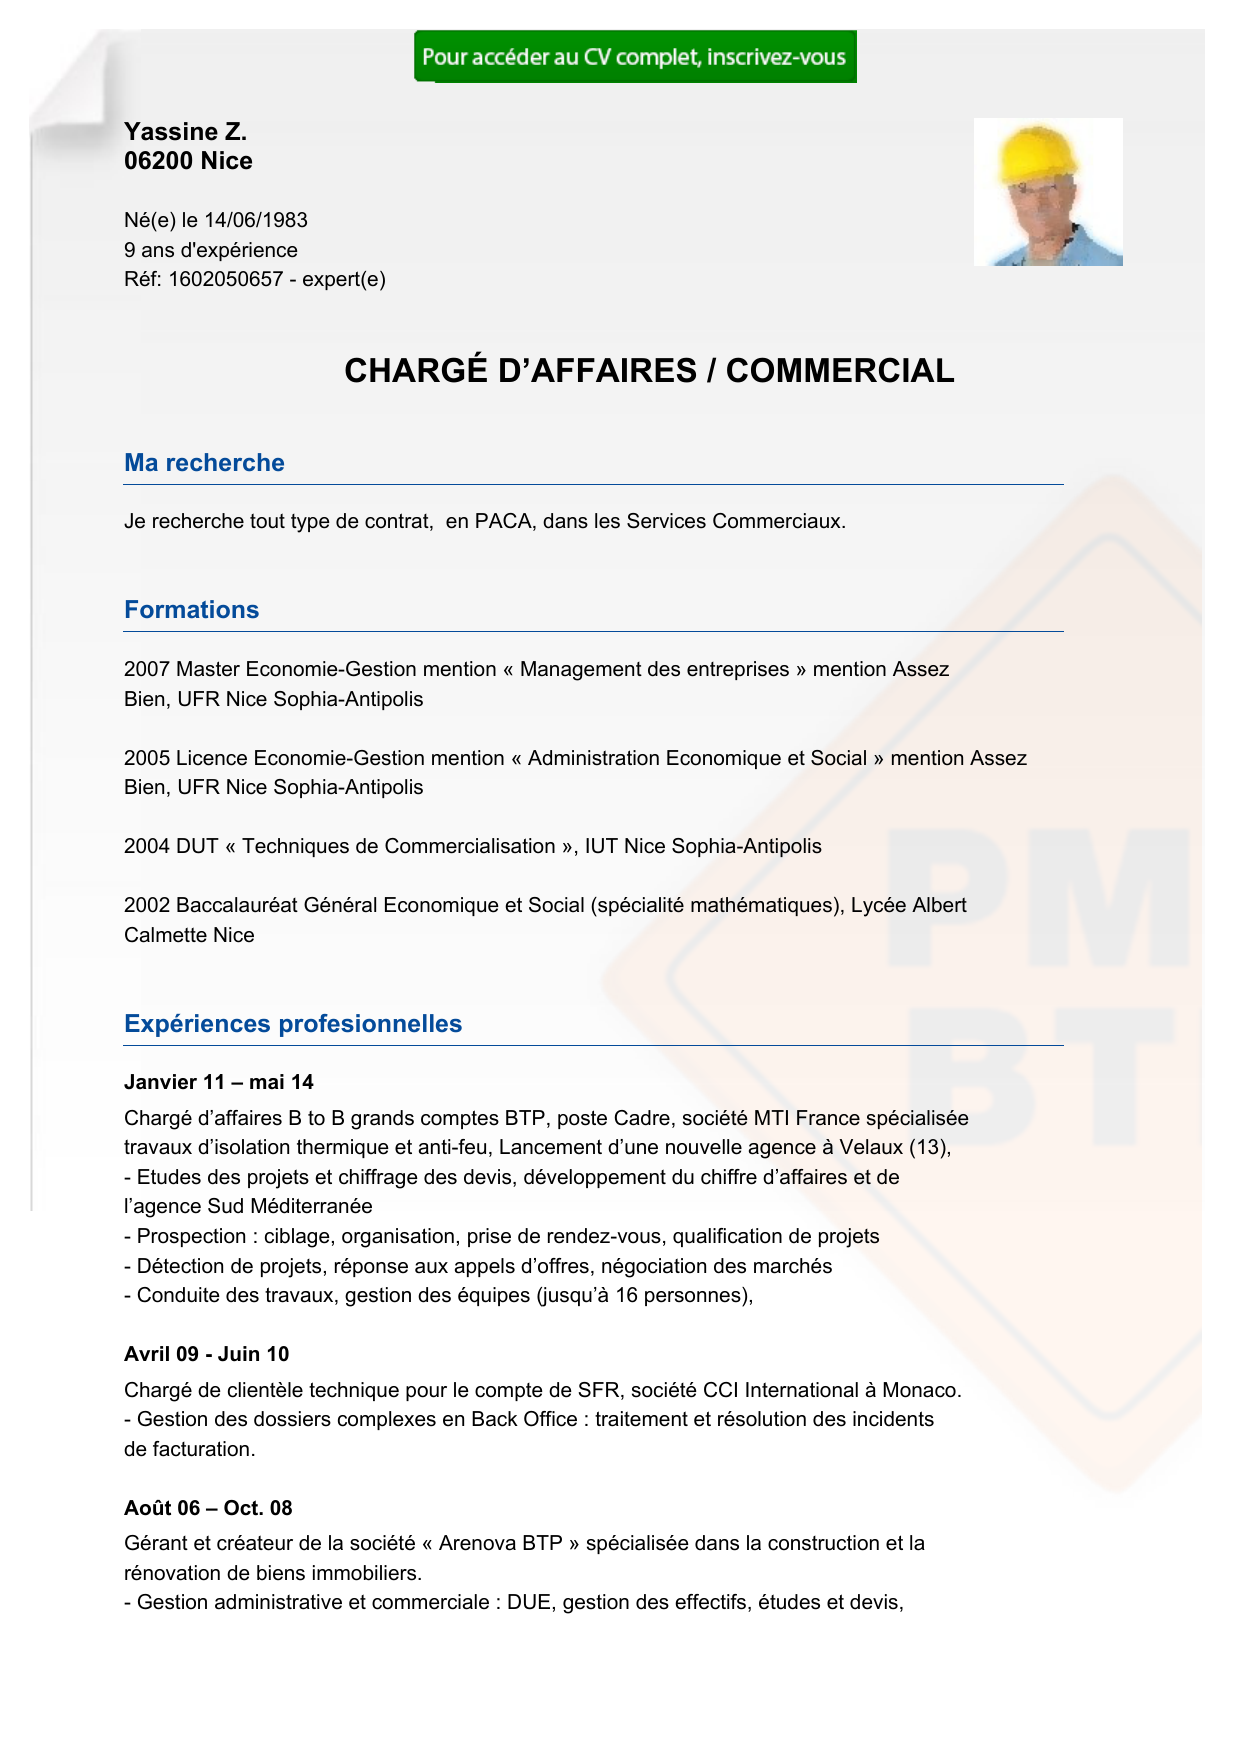 recrutement cv charg u00c9 d u2122affaires    commercial